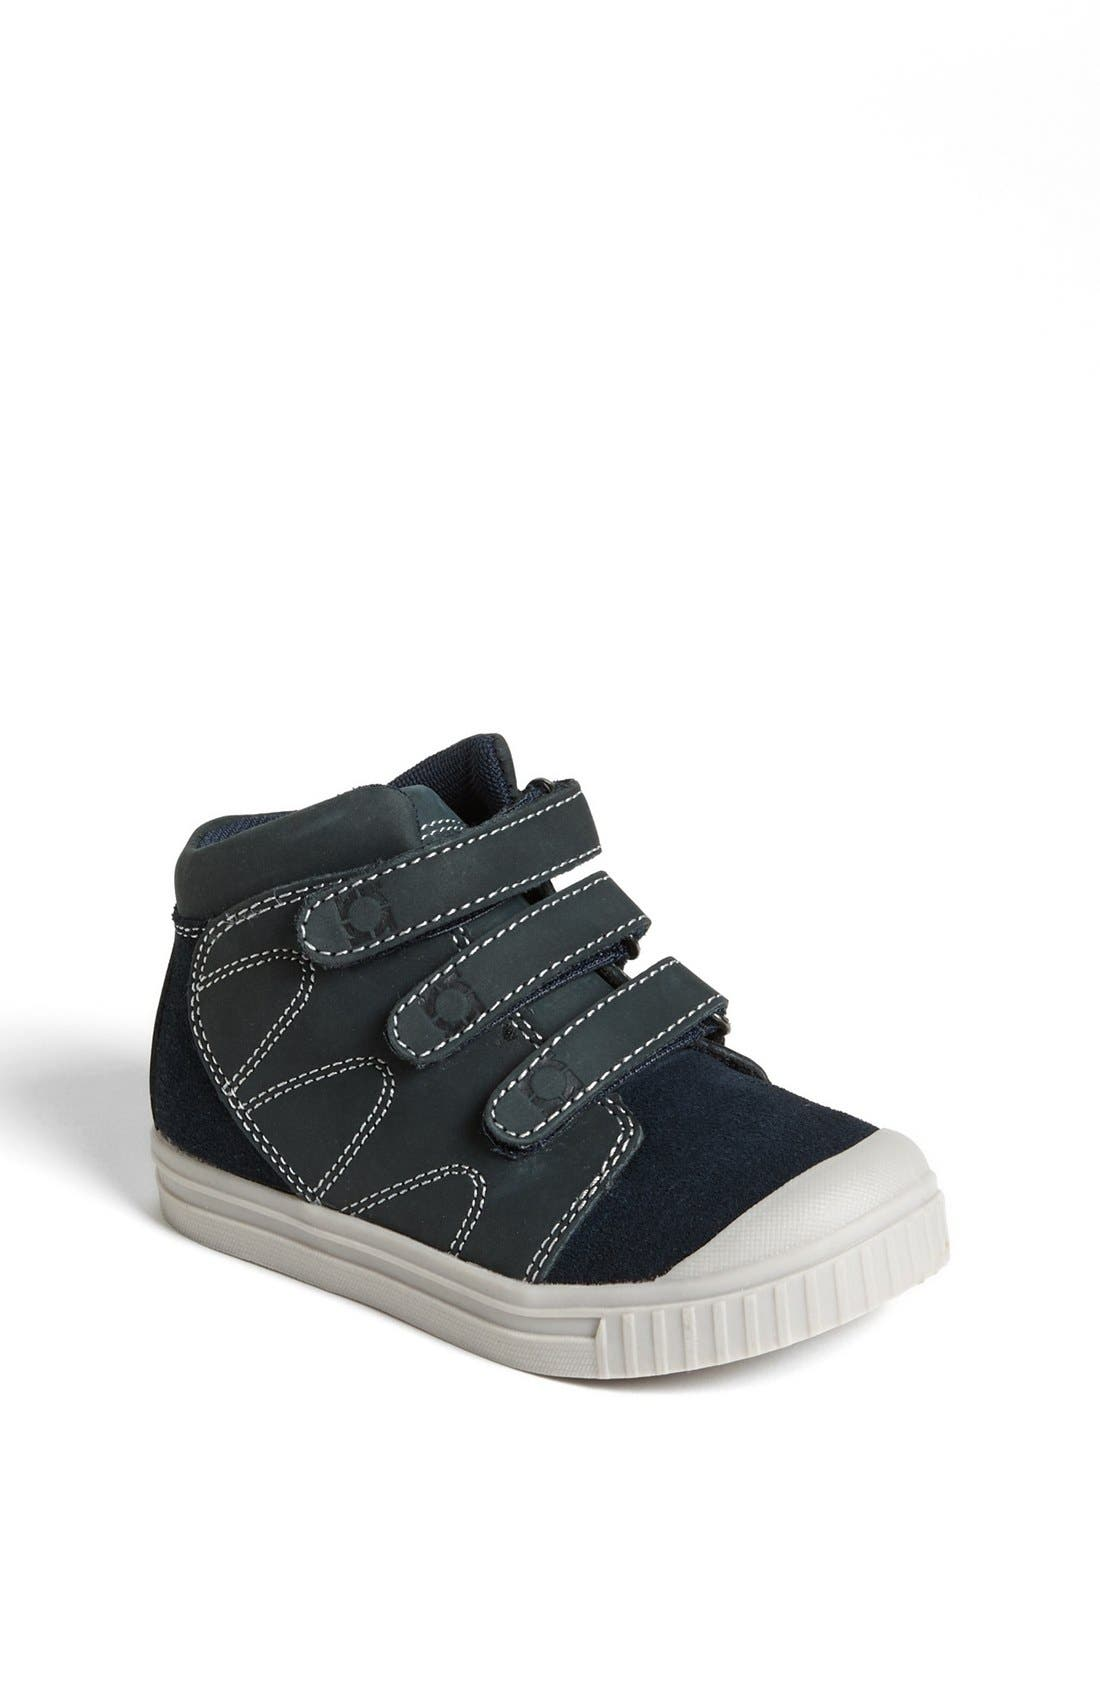 Main Image - Kenneth Cole Reaction 'Take Its Roll 2' Sneaker (Walker & Toddler)